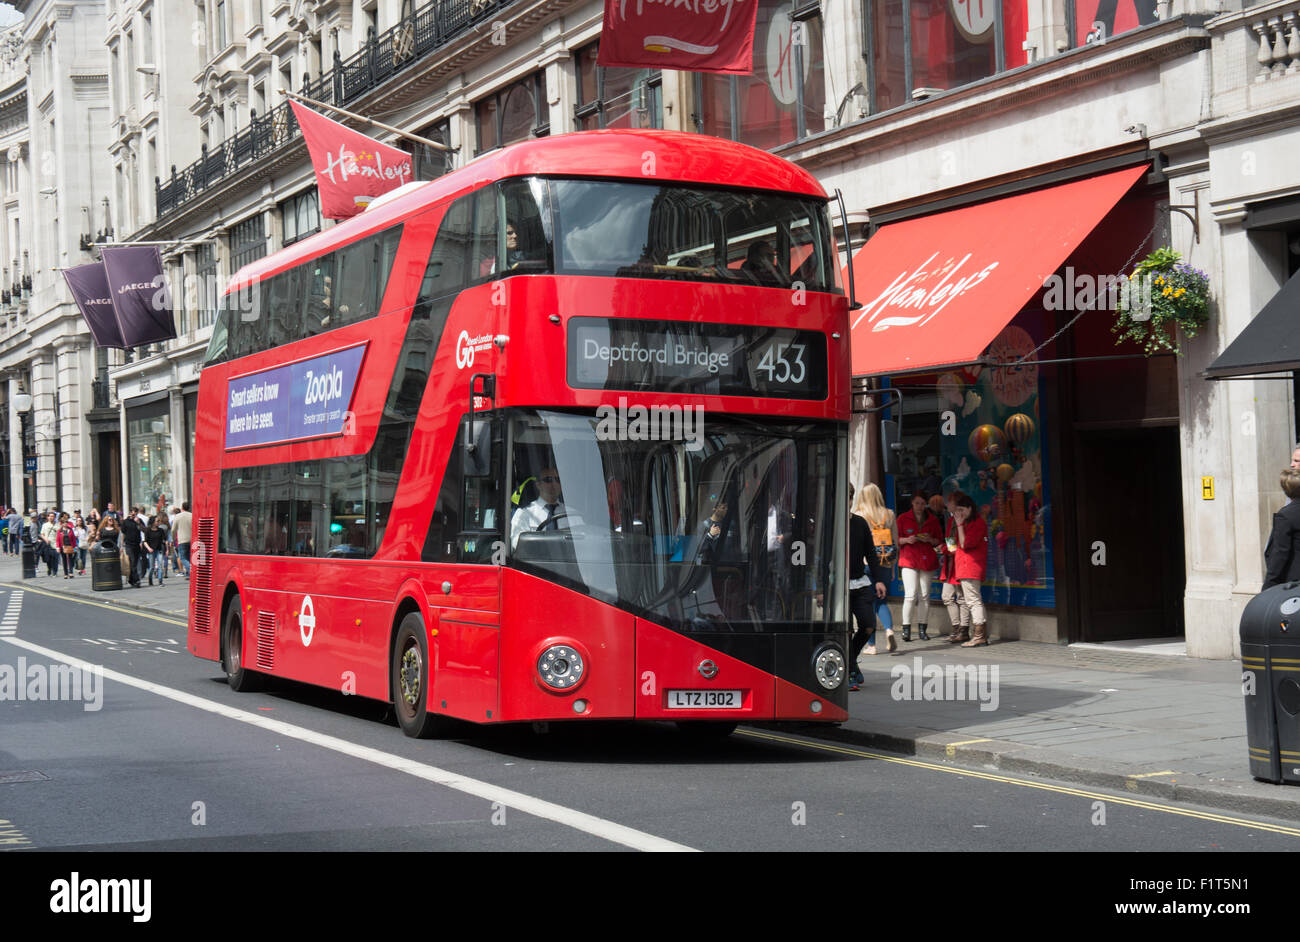 A New Routemaster operated by Go-Ahead London on behalf of Transport for London on route 453 passes Hamleys toy - Stock Image